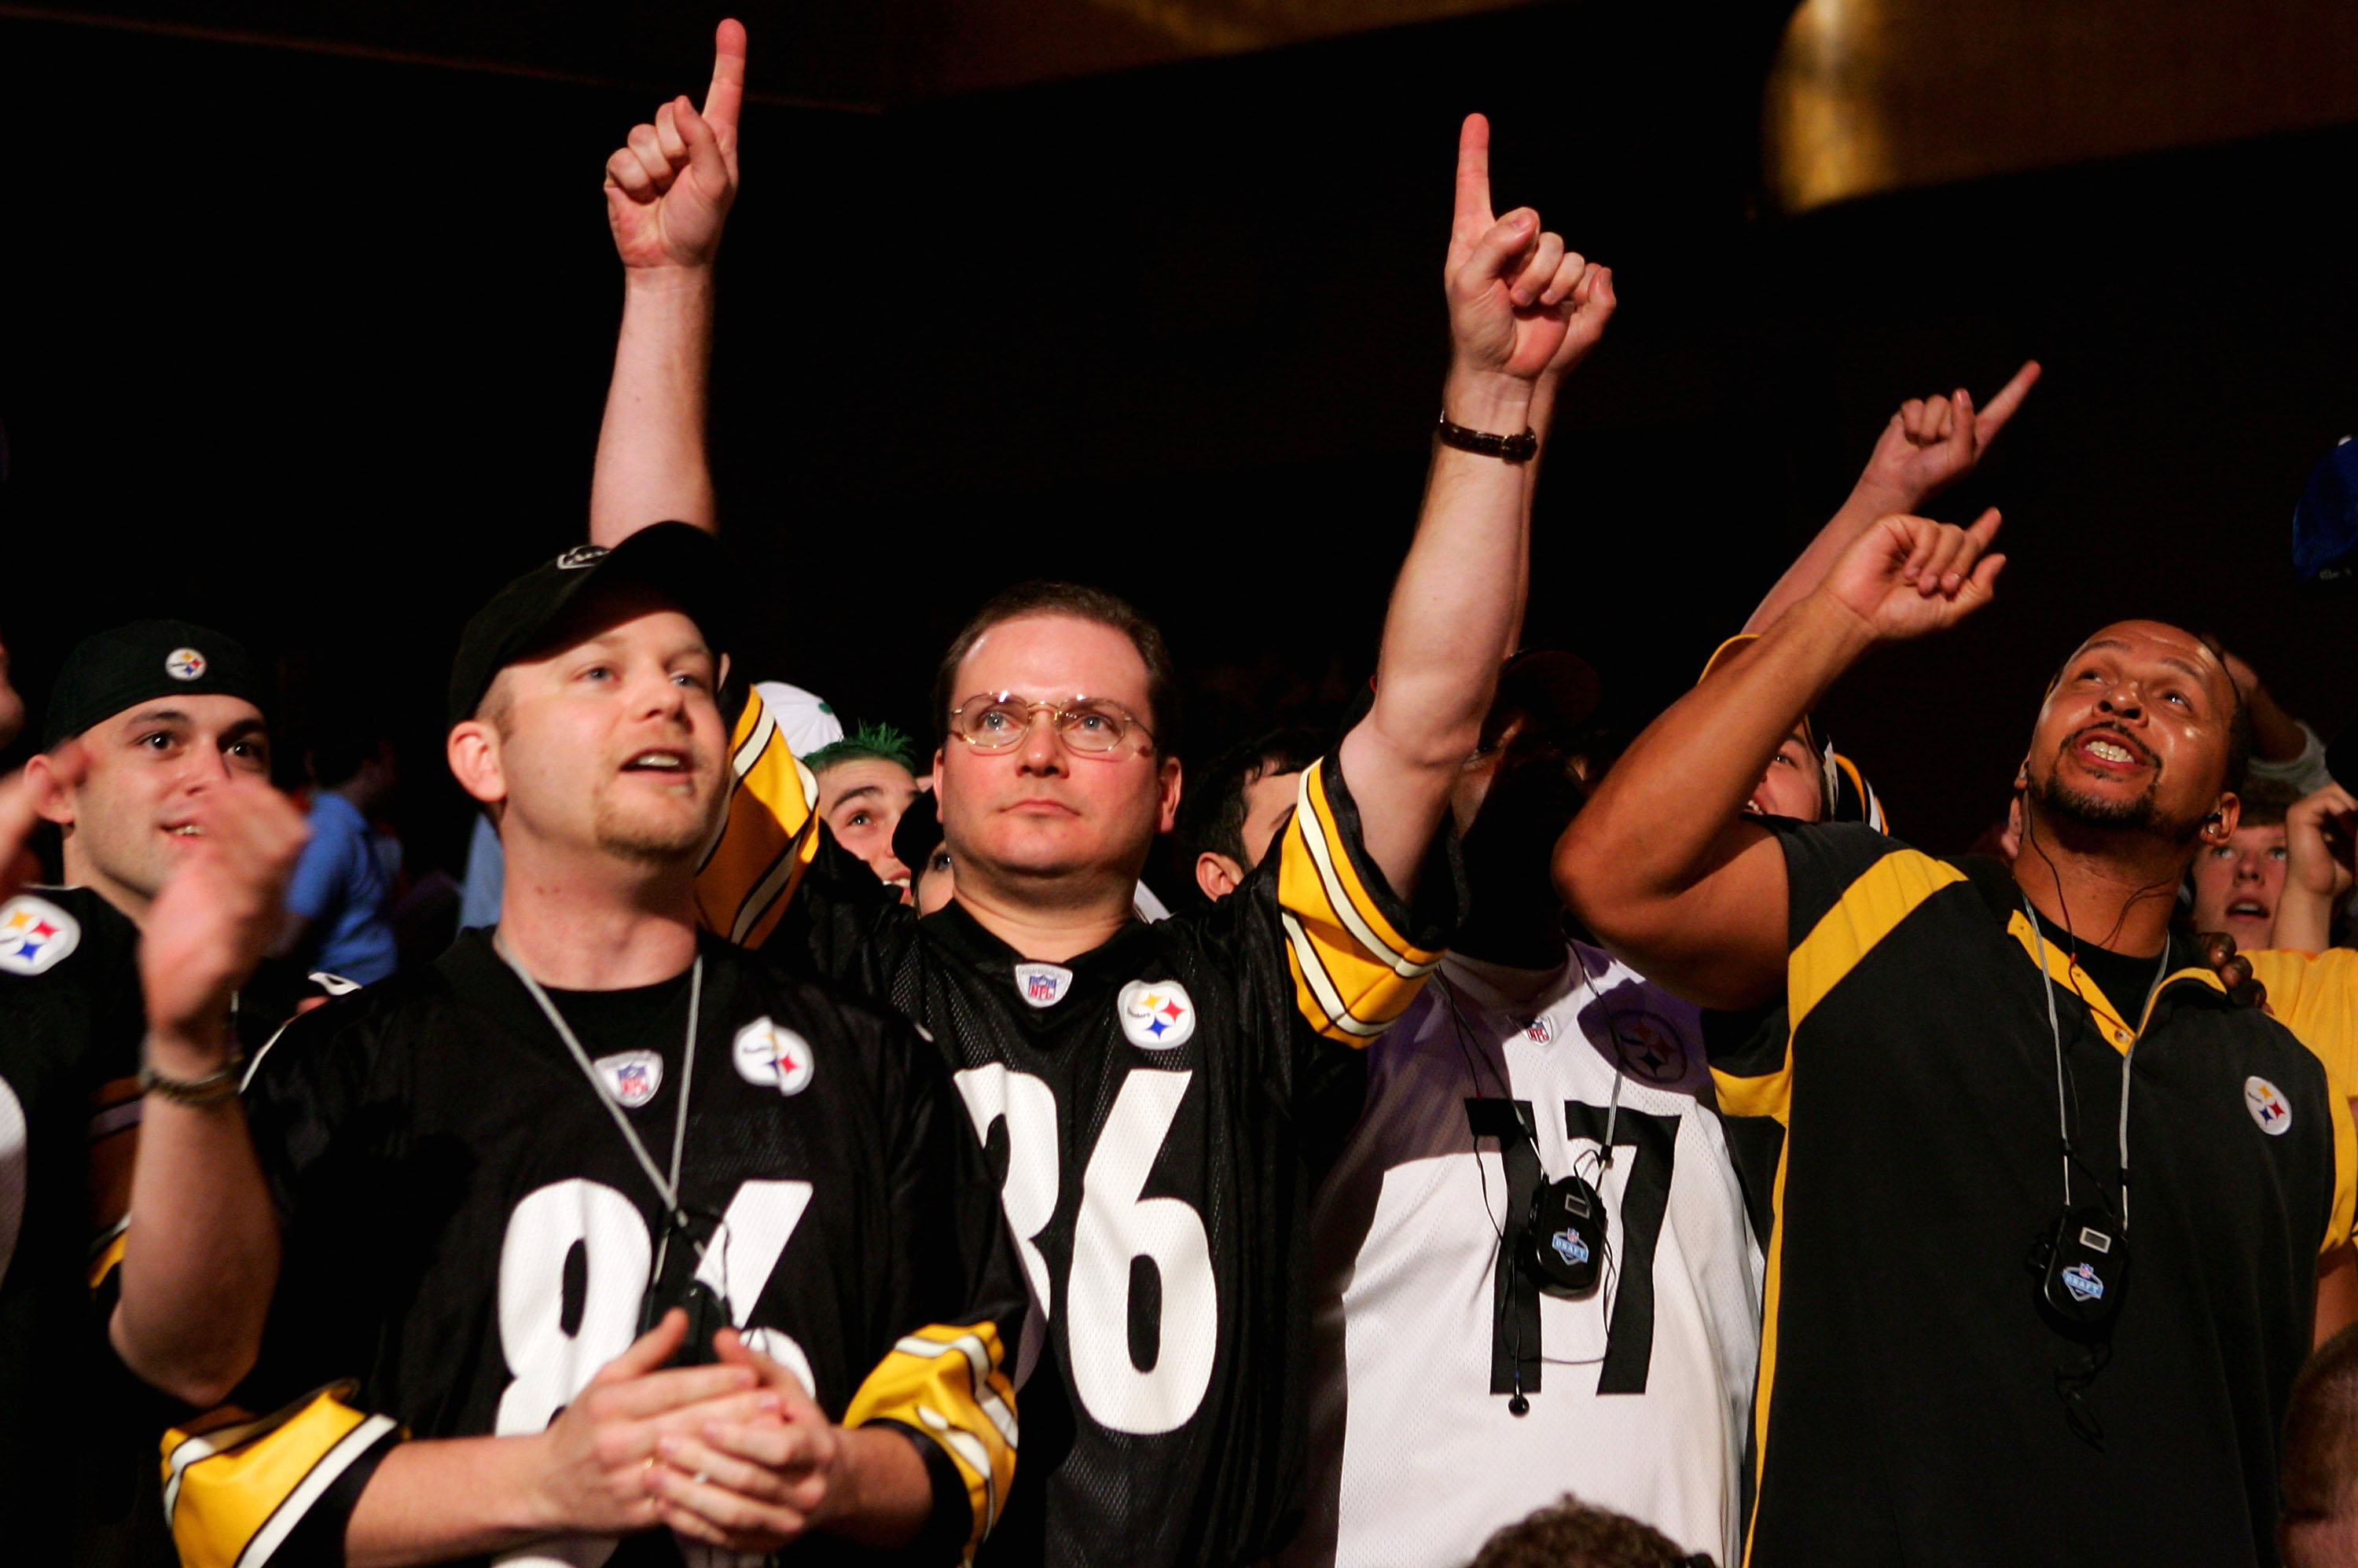 Pittsburgh Steeler fans hope to celebrate a quality draft class in 2011.